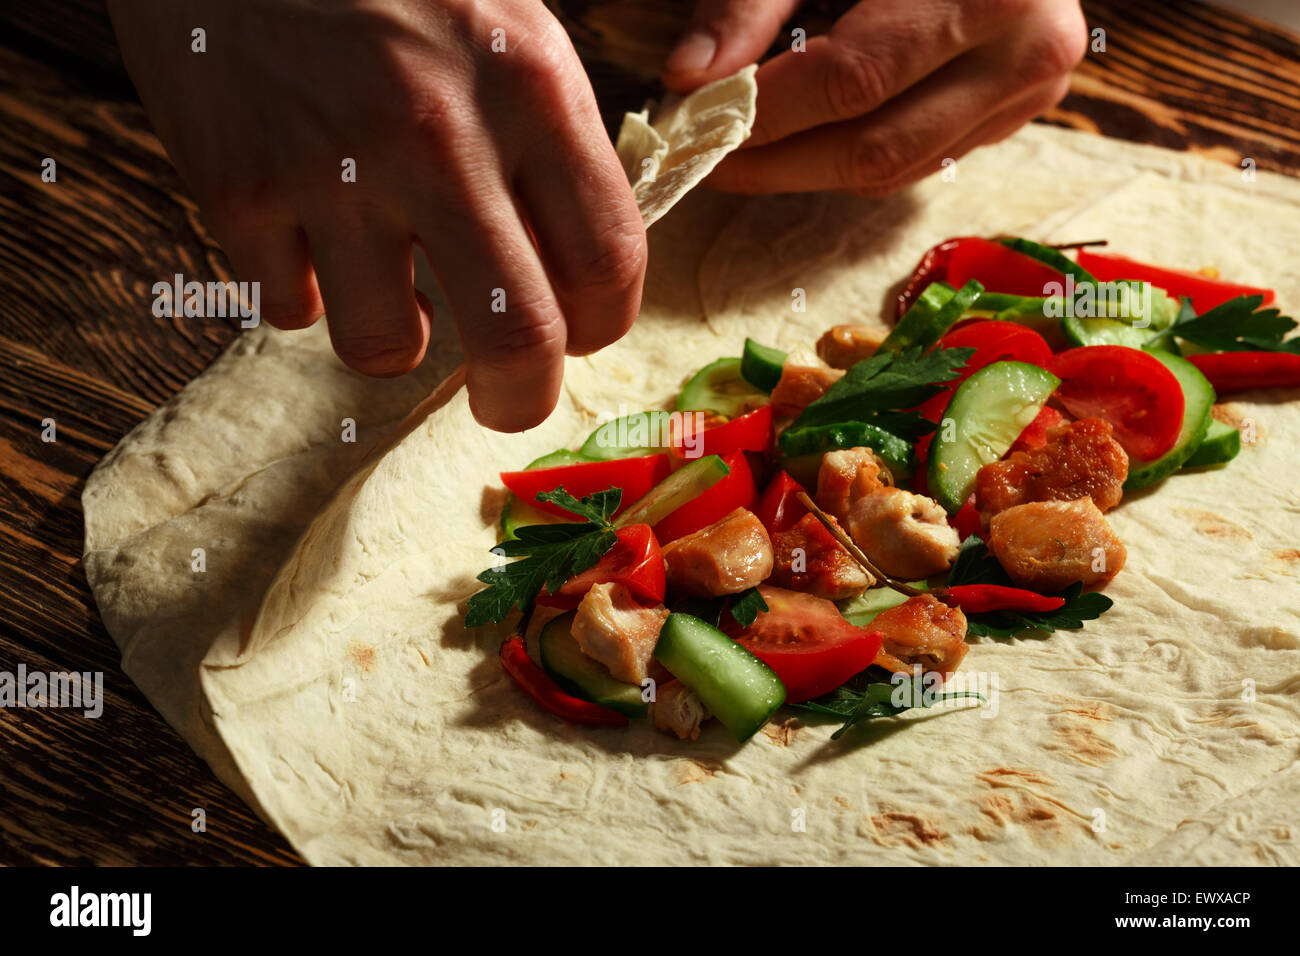 Cooking traditional shawarma wrap with chicken and vegetables - Stock Image